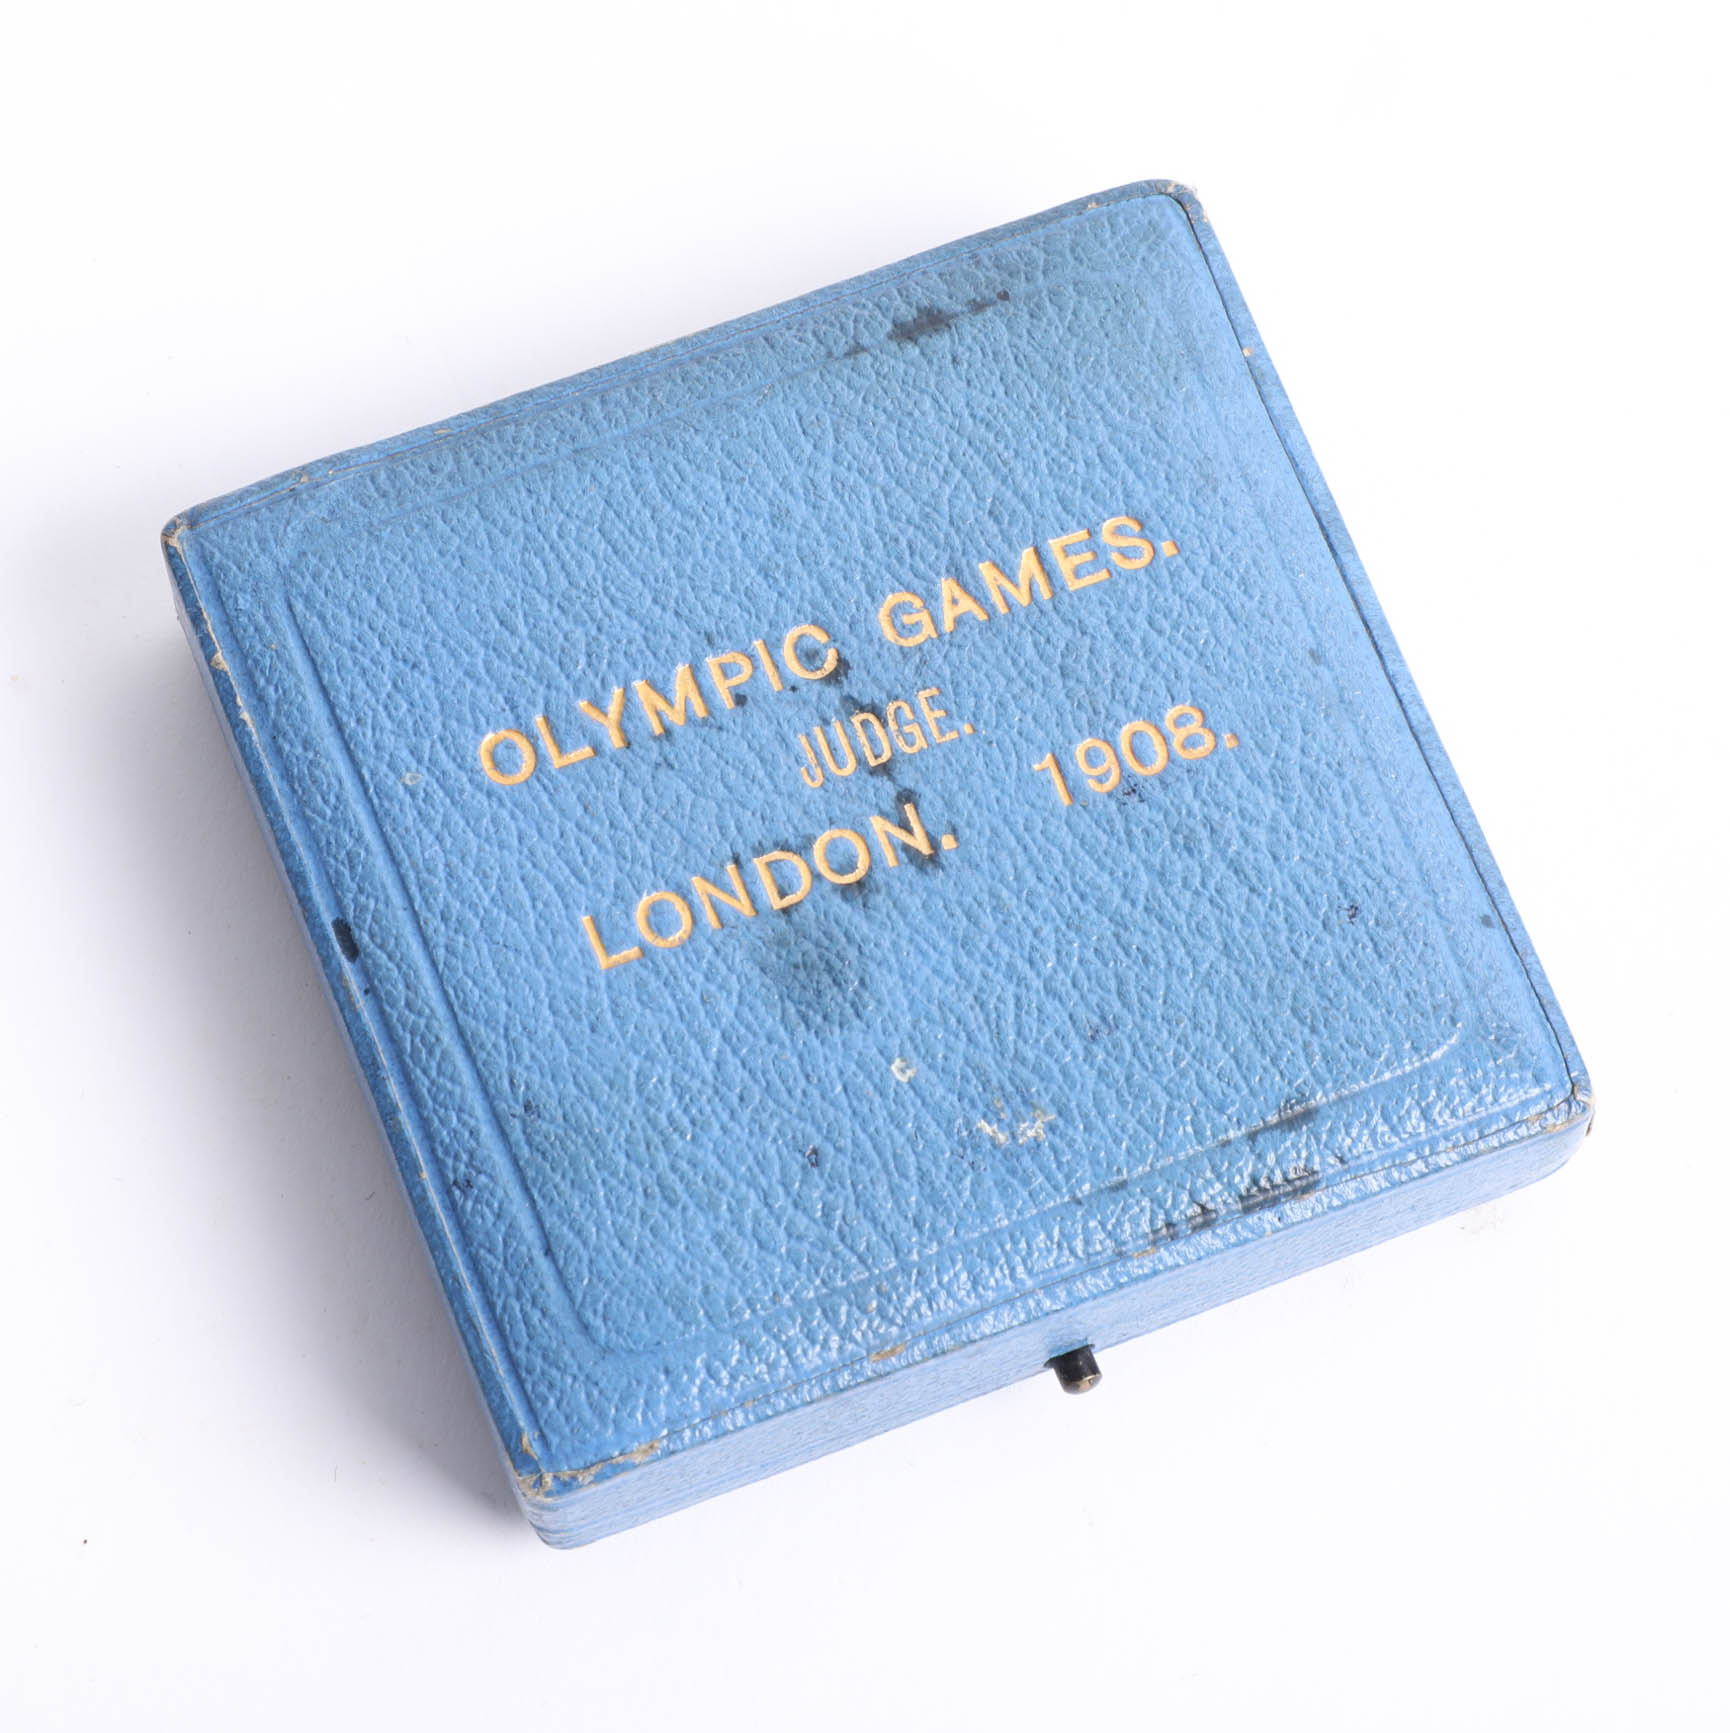 Lot 007 - A London Olympics 1908 Judge`s commemorative medal by P. Vaughton, the obverse depicting 'Flame'